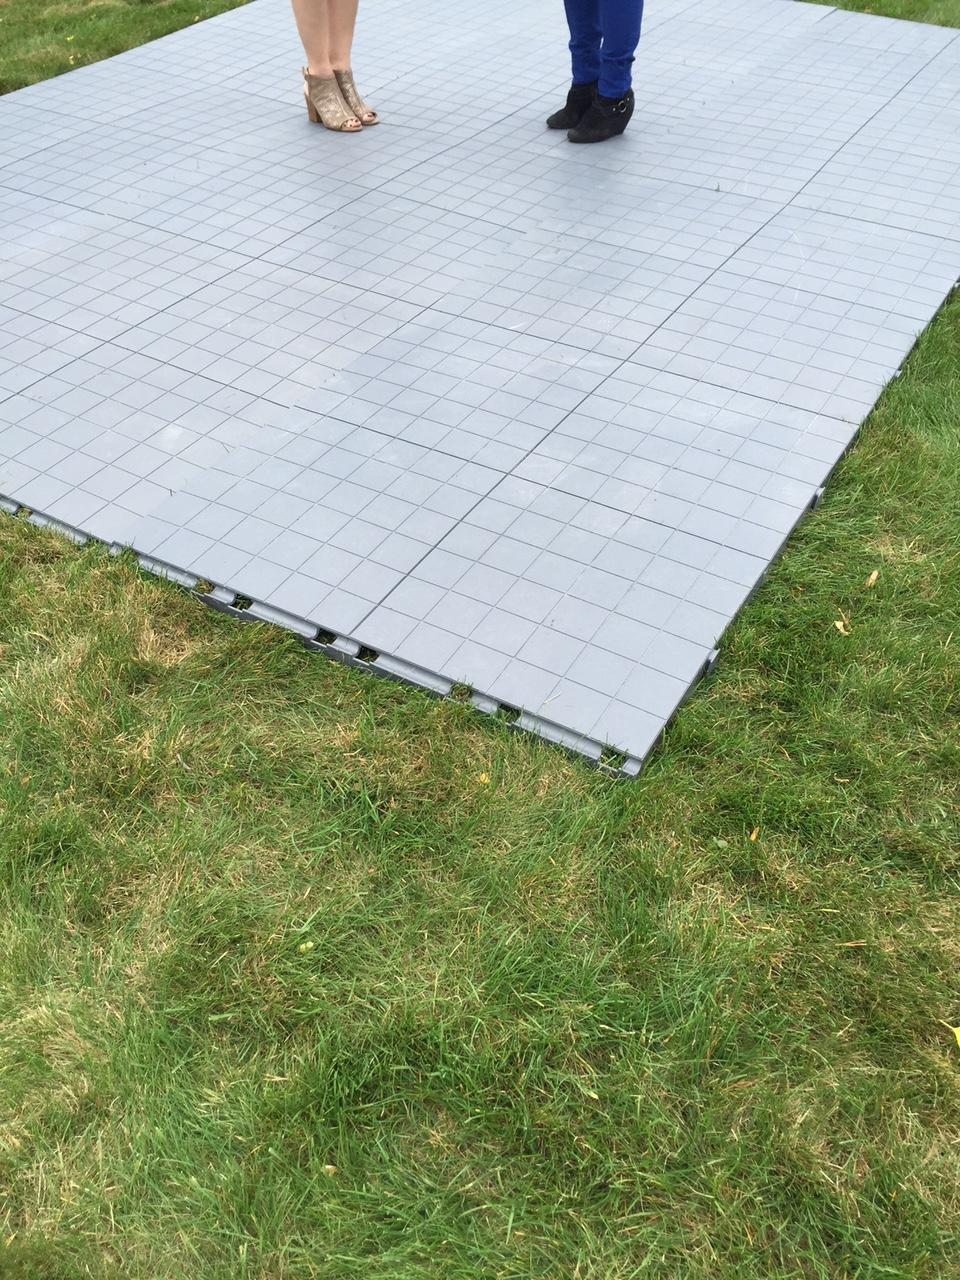 For Events Where A Raised Tent Floor Rental Isnu0027t A Budget Option,  Performance Staging Is Now Carrying A Portable Flooring System To Keep The  Grass Intact ...